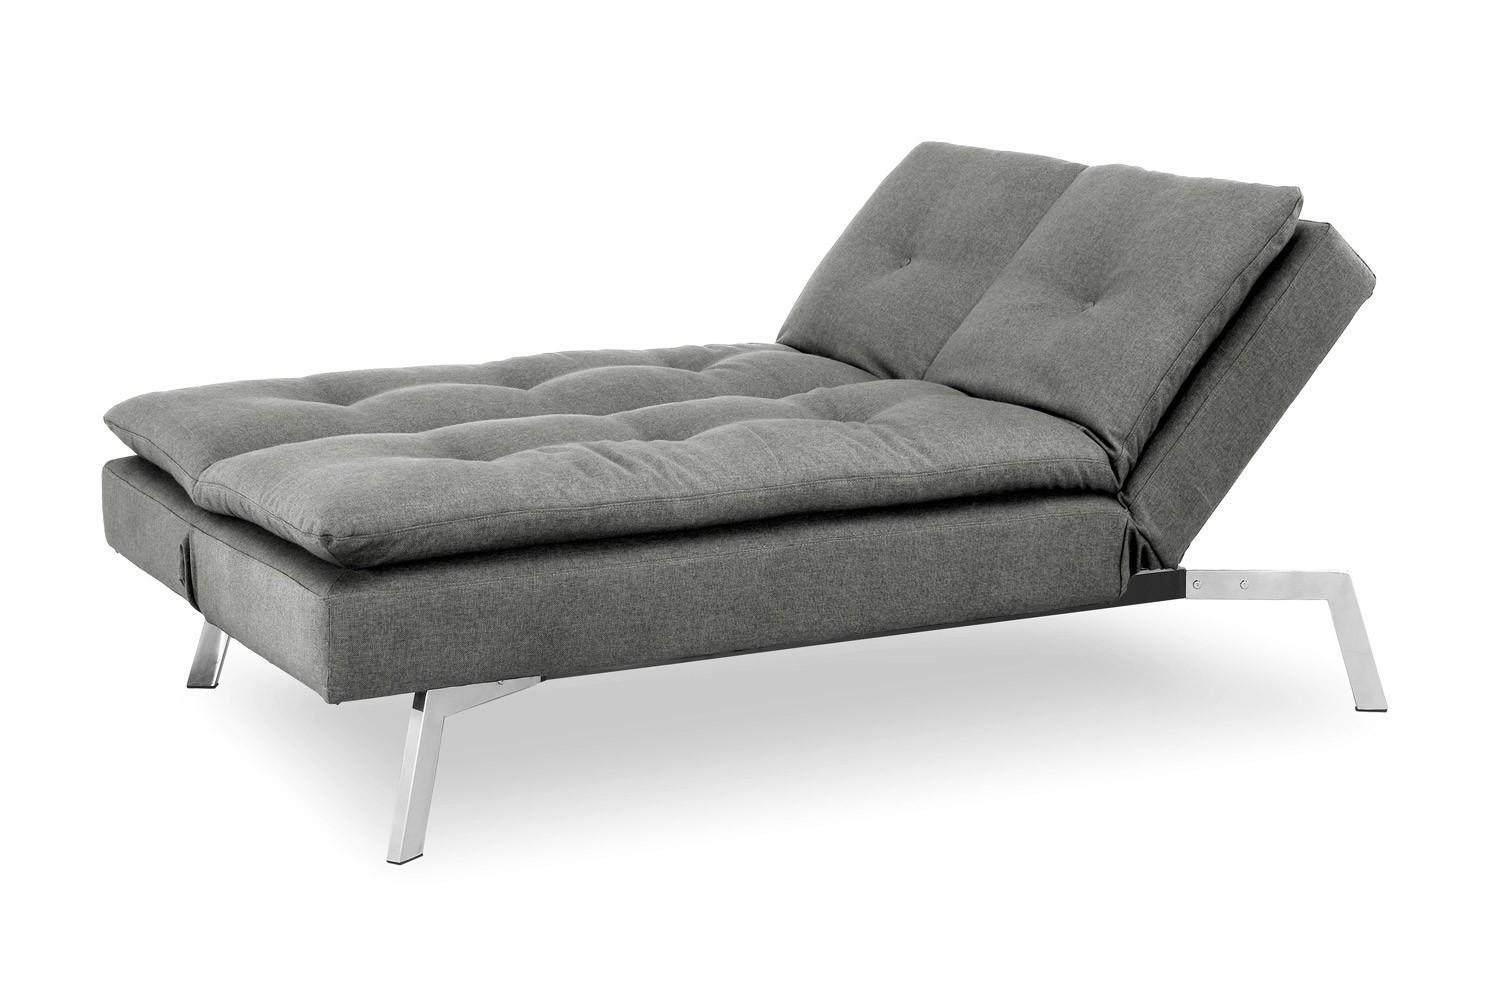 Shelby Sofa Sleeper | Shelby Futon | The Futon Shop With Convertible Futon Sofa Beds (Image 16 of 20)